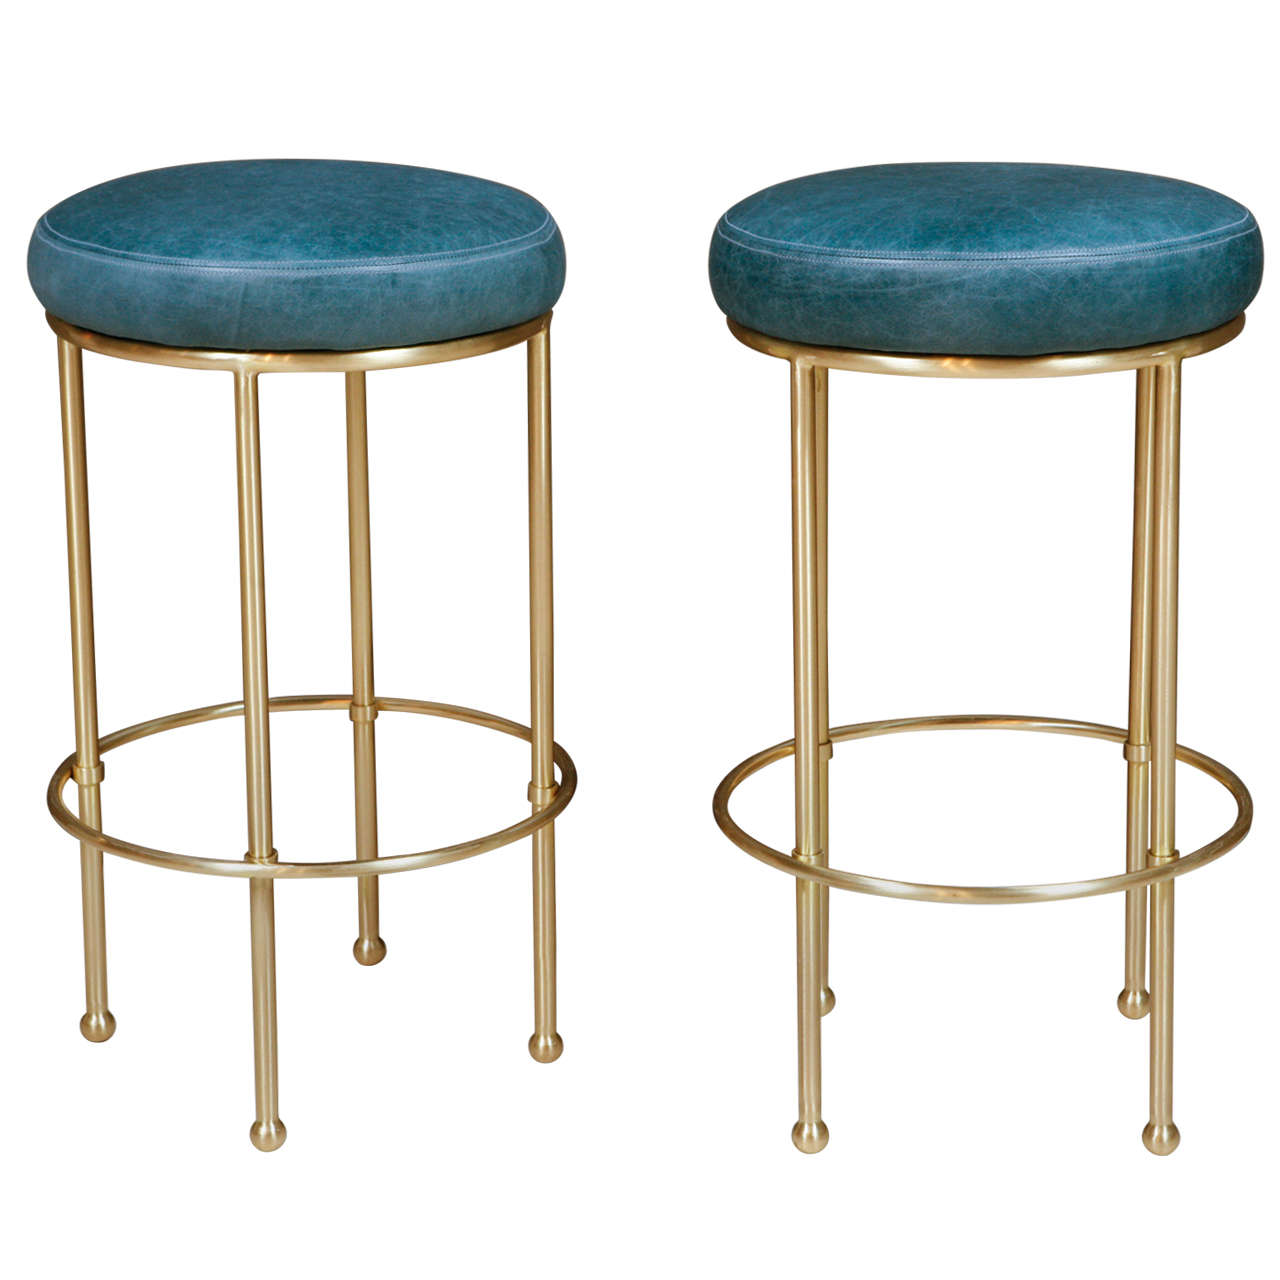 Brass Bar Stool at 1stdibs : X from www.1stdibs.com size 1280 x 1280 jpeg 87kB